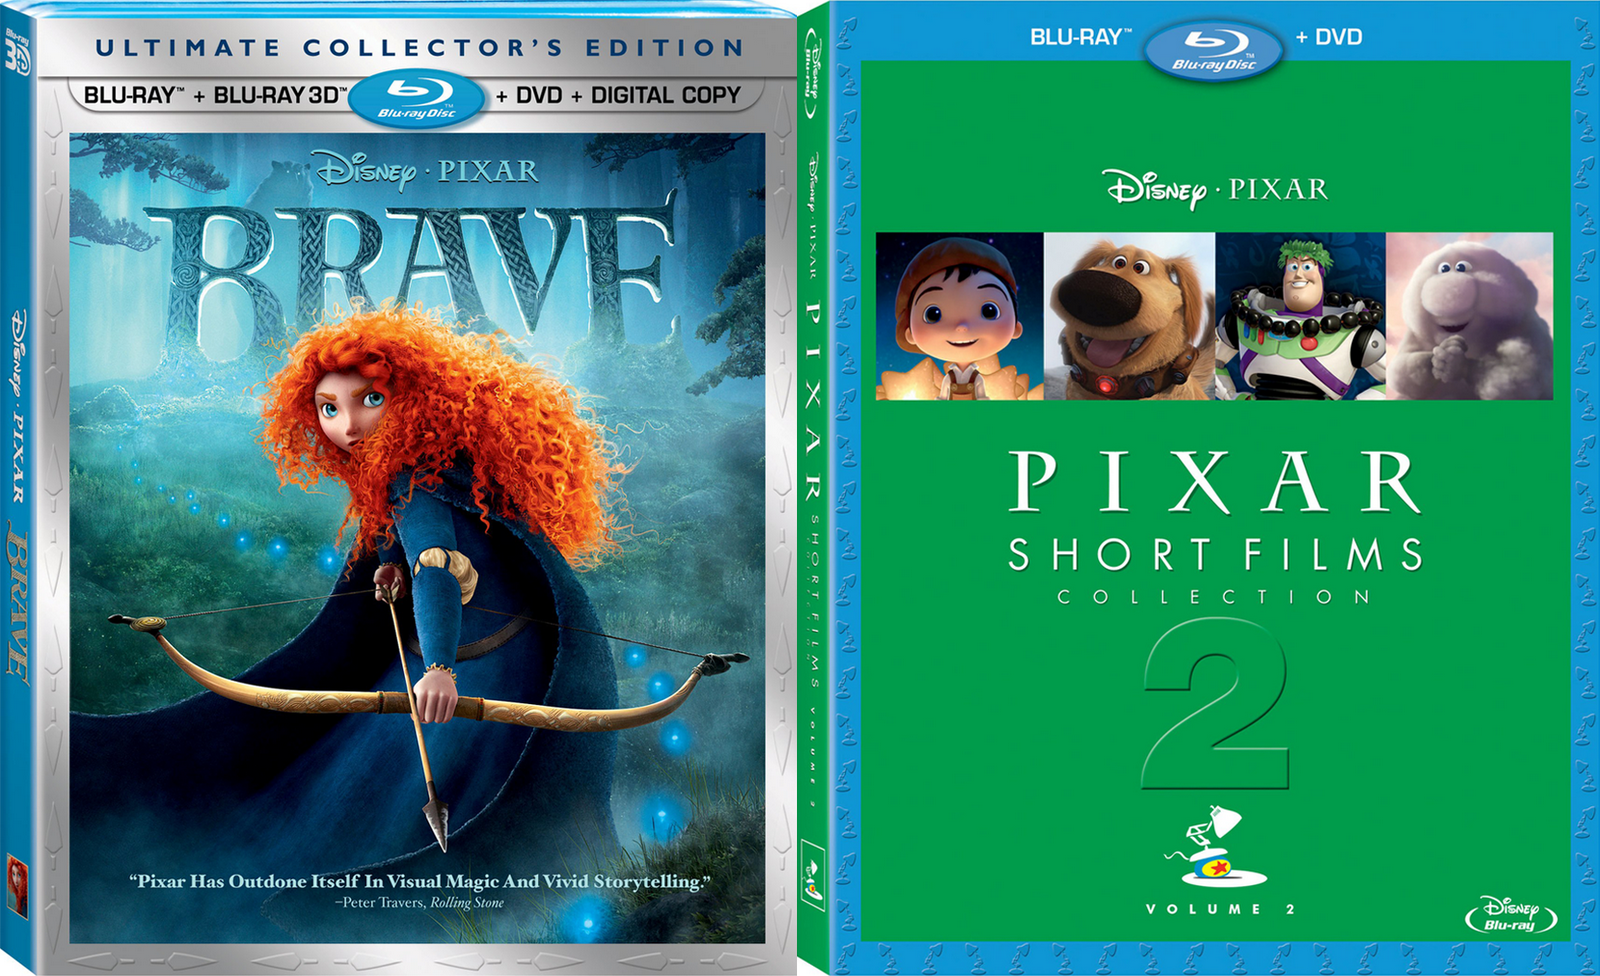 Blu-ray Review: Brave & Pixar Short Films Collection Volume 2